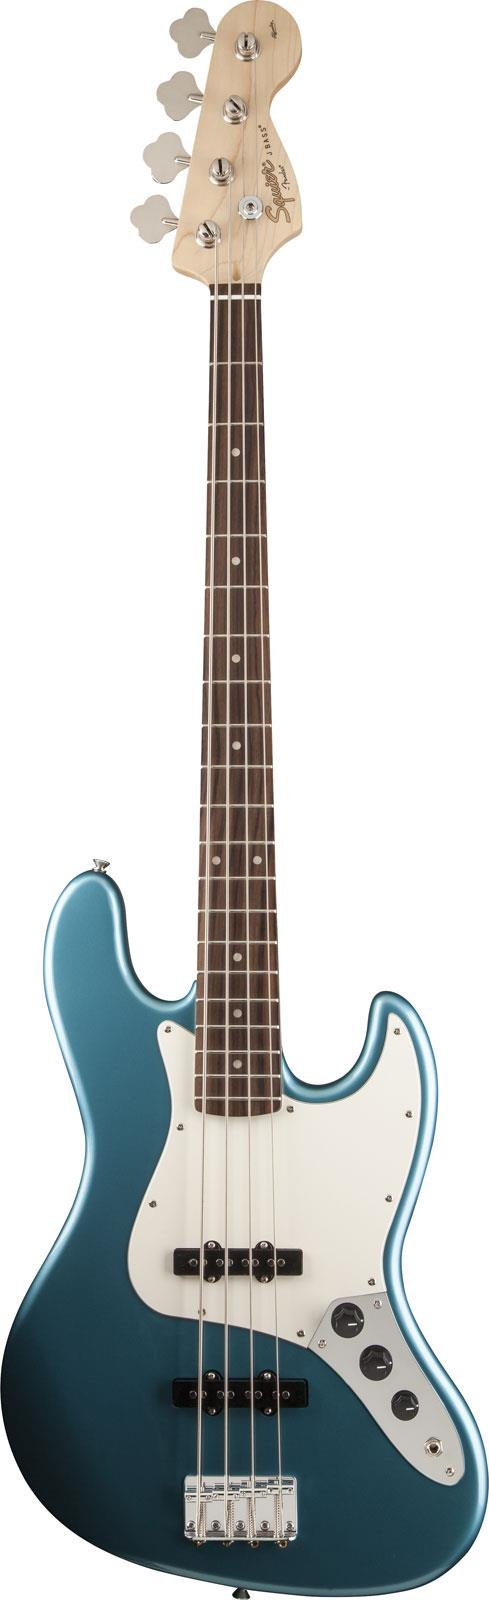 squier affinity jazz bass lake placid blue prchpg keymusic. Black Bedroom Furniture Sets. Home Design Ideas